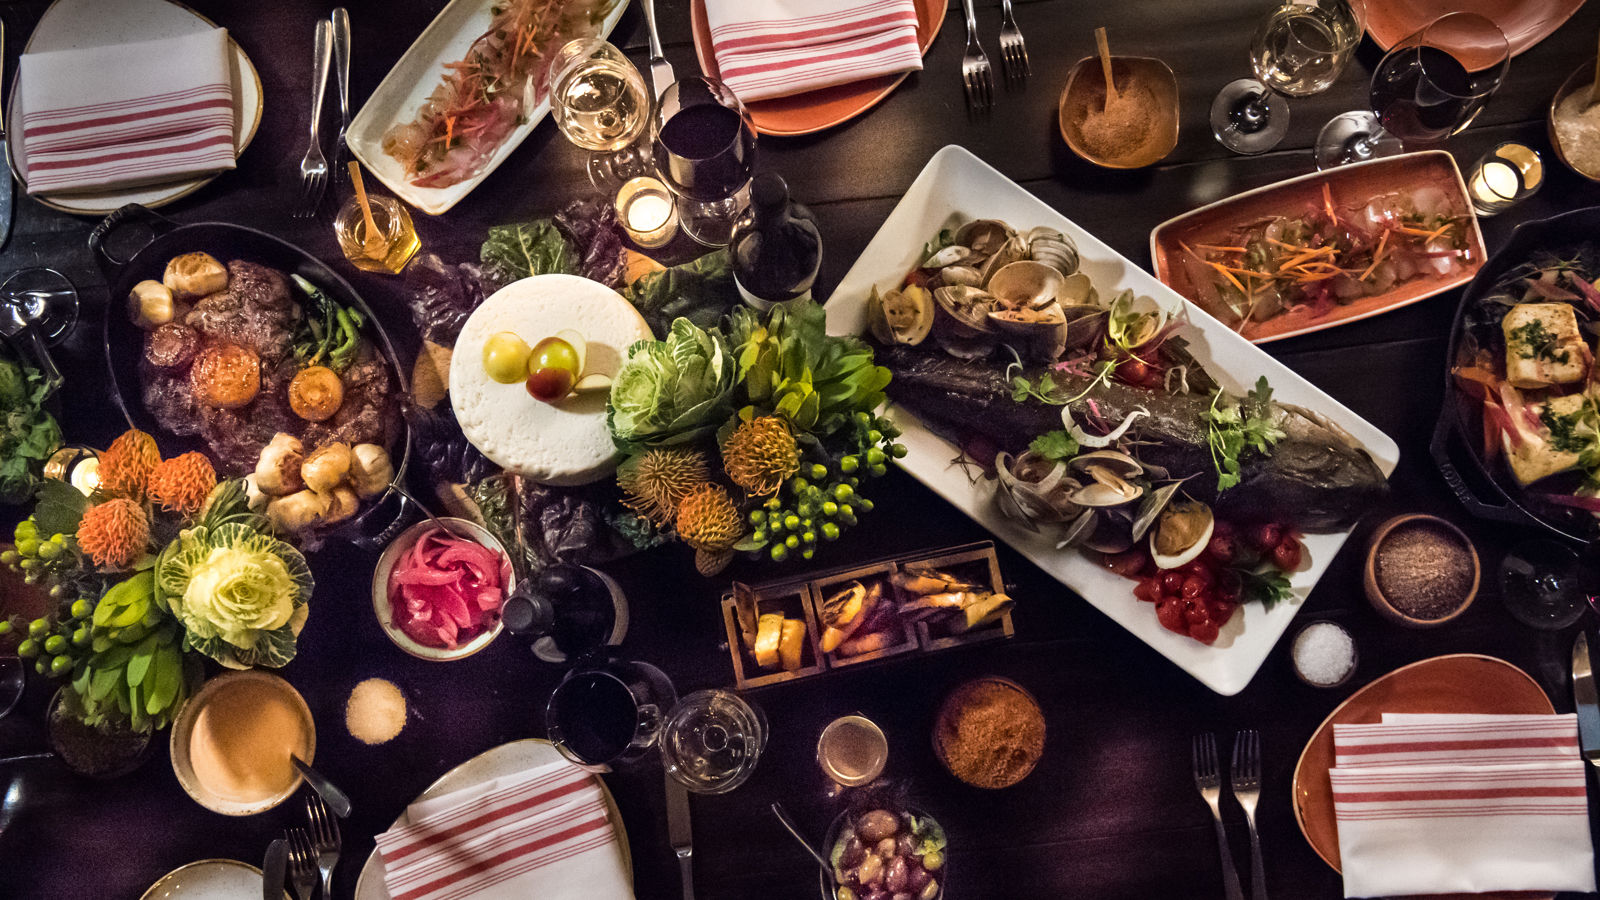 Carmel Valley Ranch_Dining_Food_Artisan Food Image Overhead